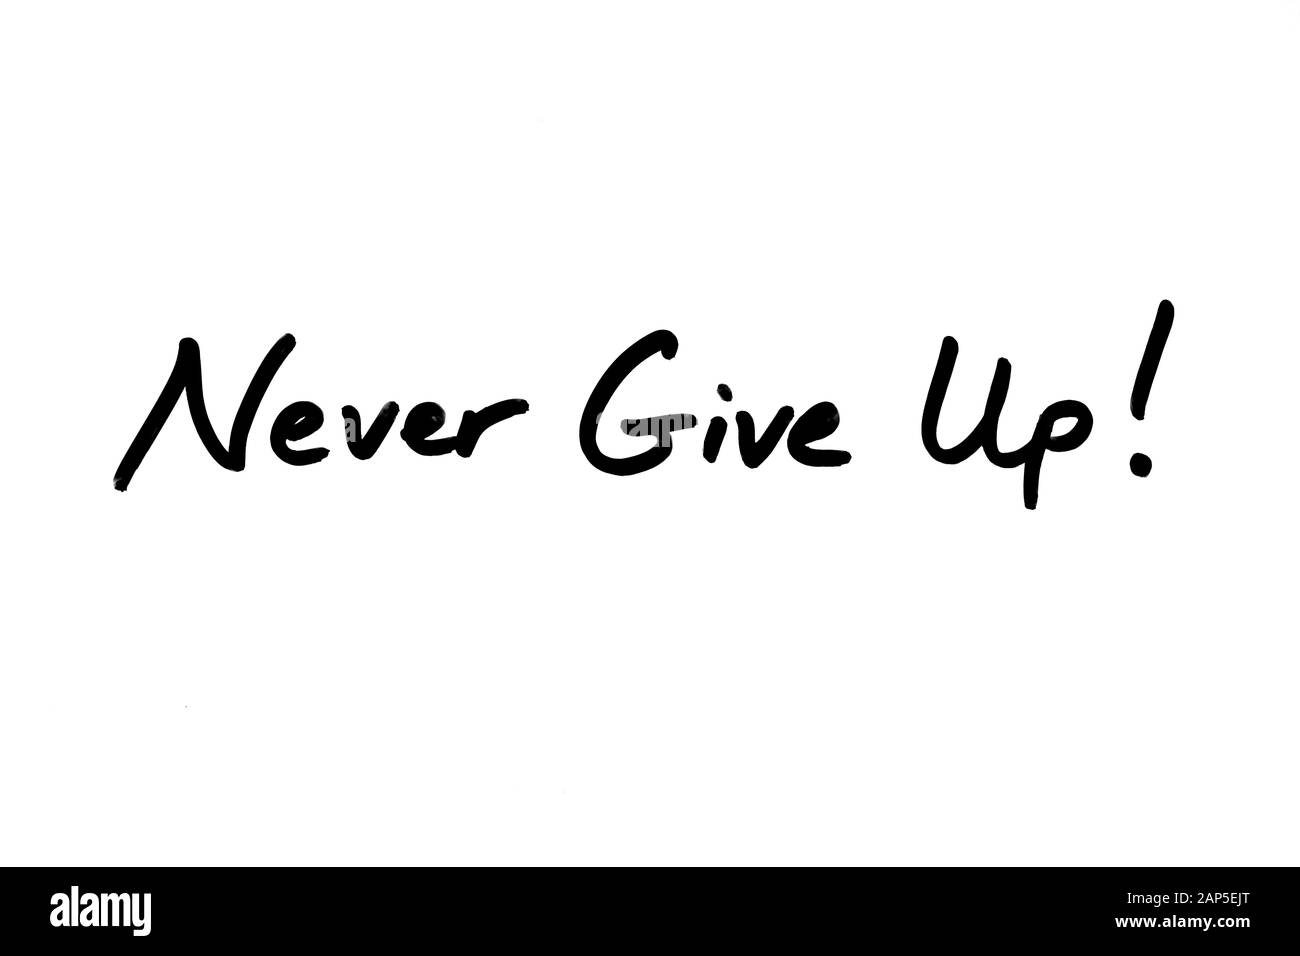 Never Give Up! handwritten on a white background. Stock Photo